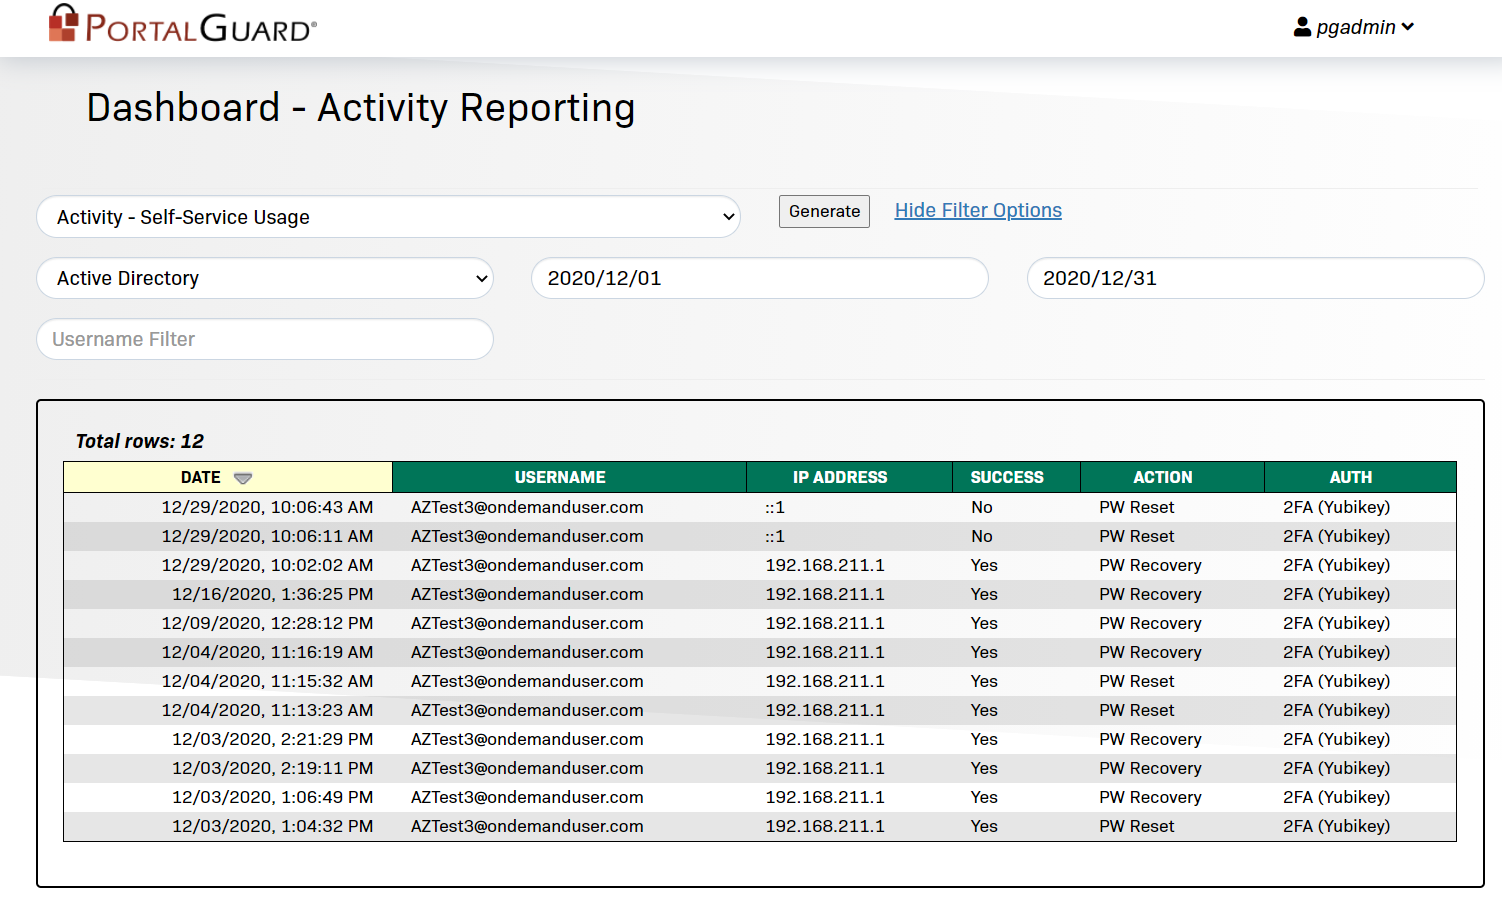 Dashboard - Activity Reporting